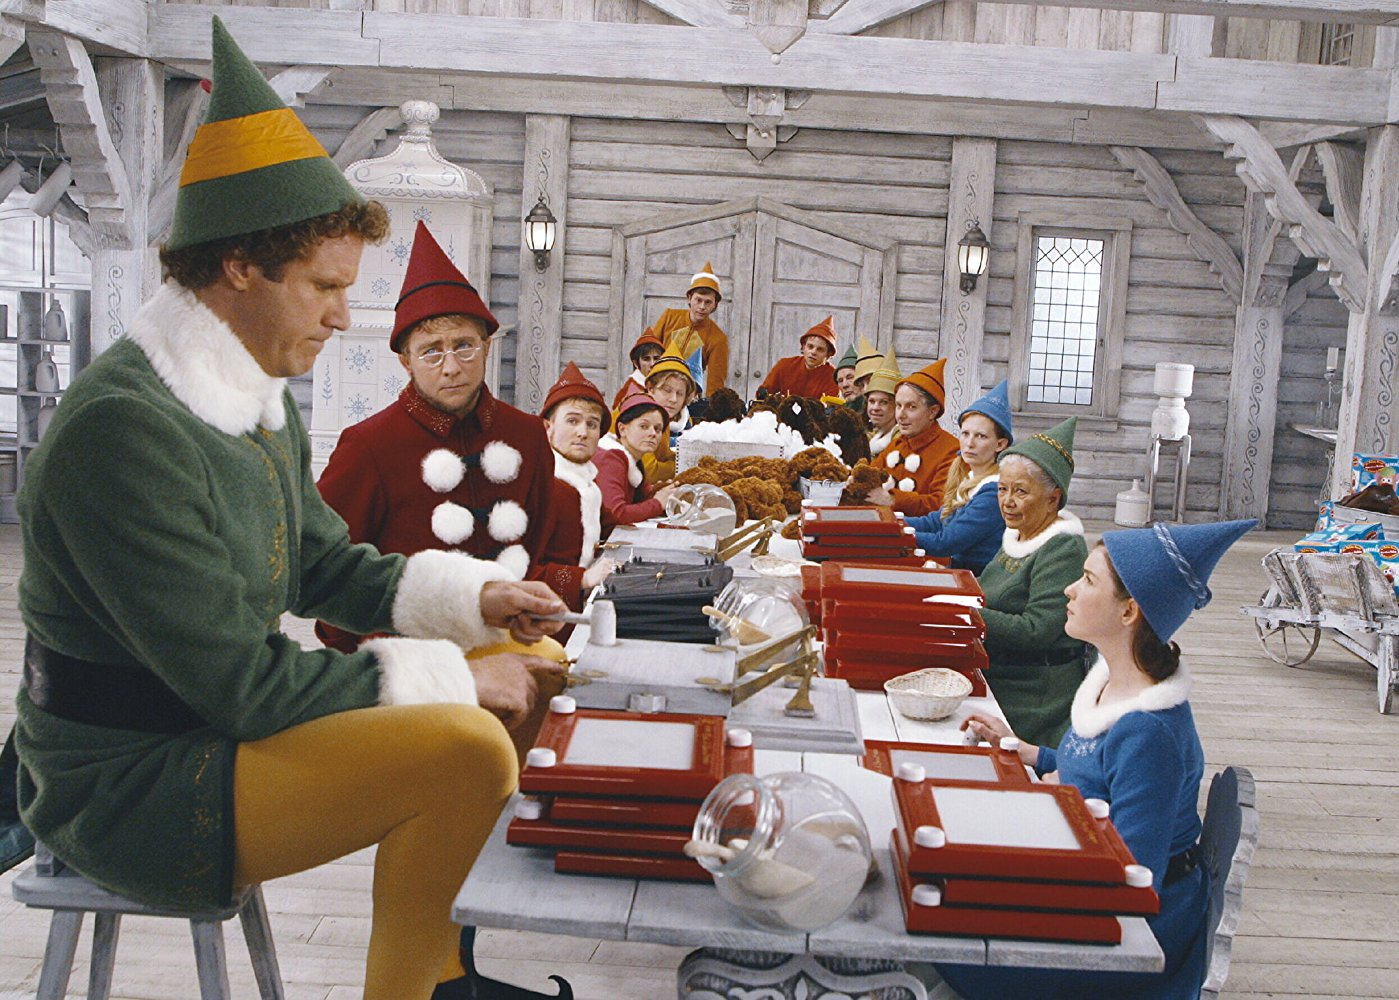 When is Elf on TV 2017 and where can I watch it?